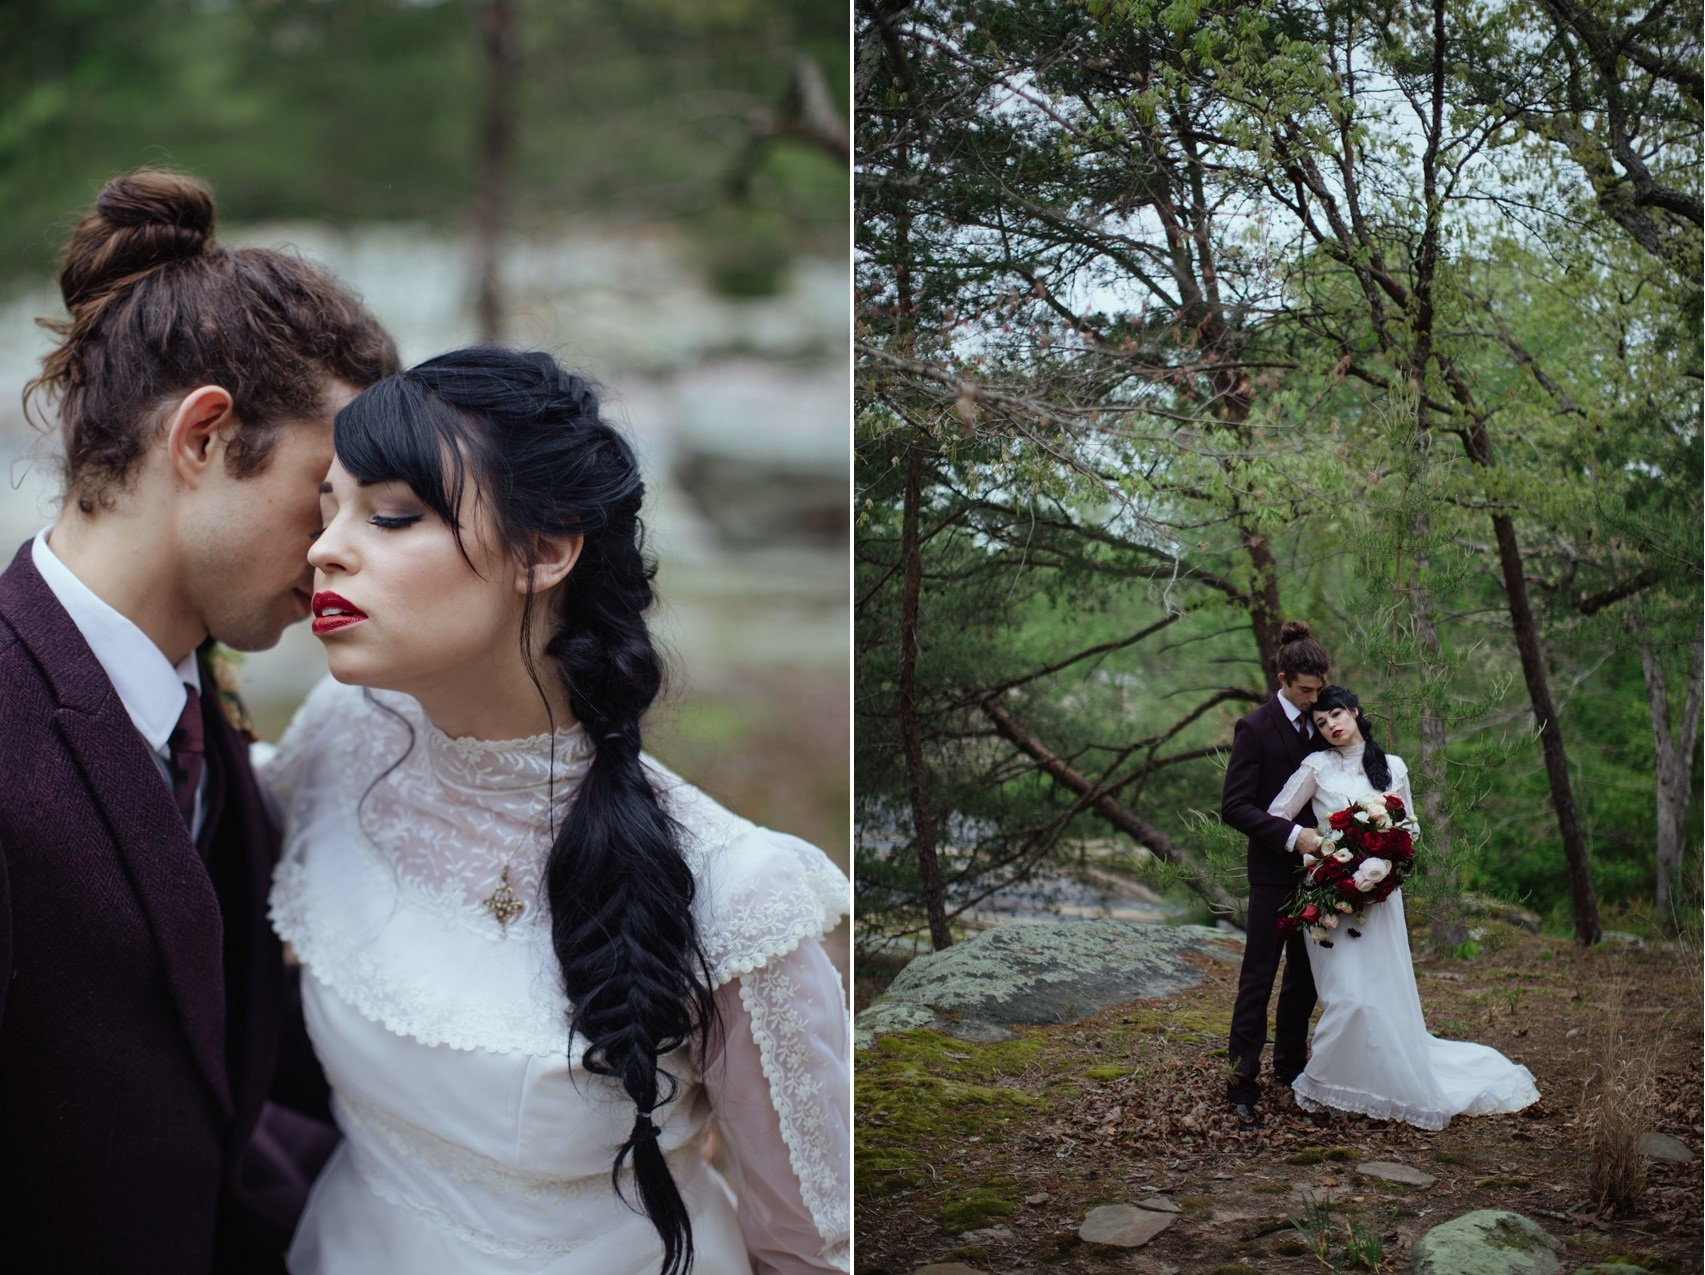 Styled Shoot | Gothic Romance Inspiration